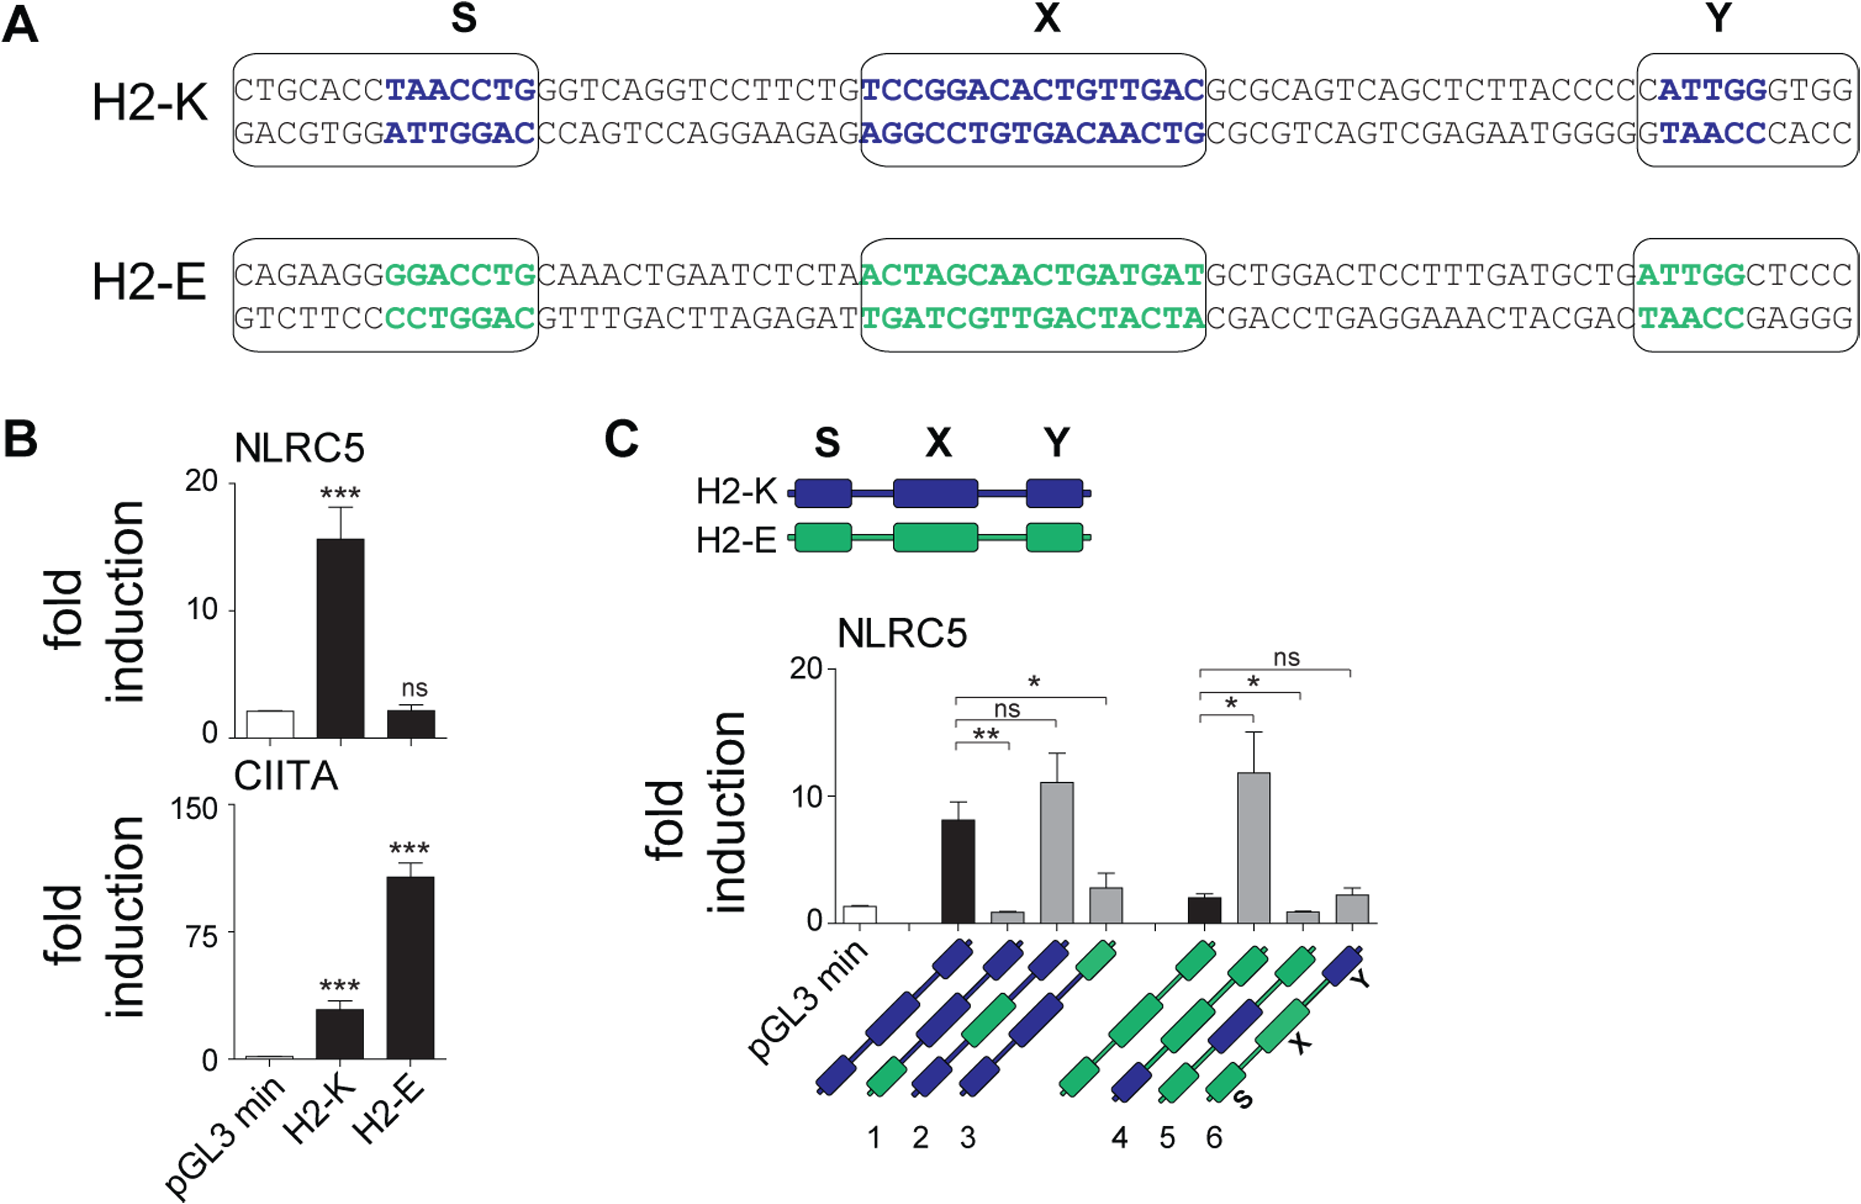 The S box sequence is required for NLRC5-mediated transactivation.